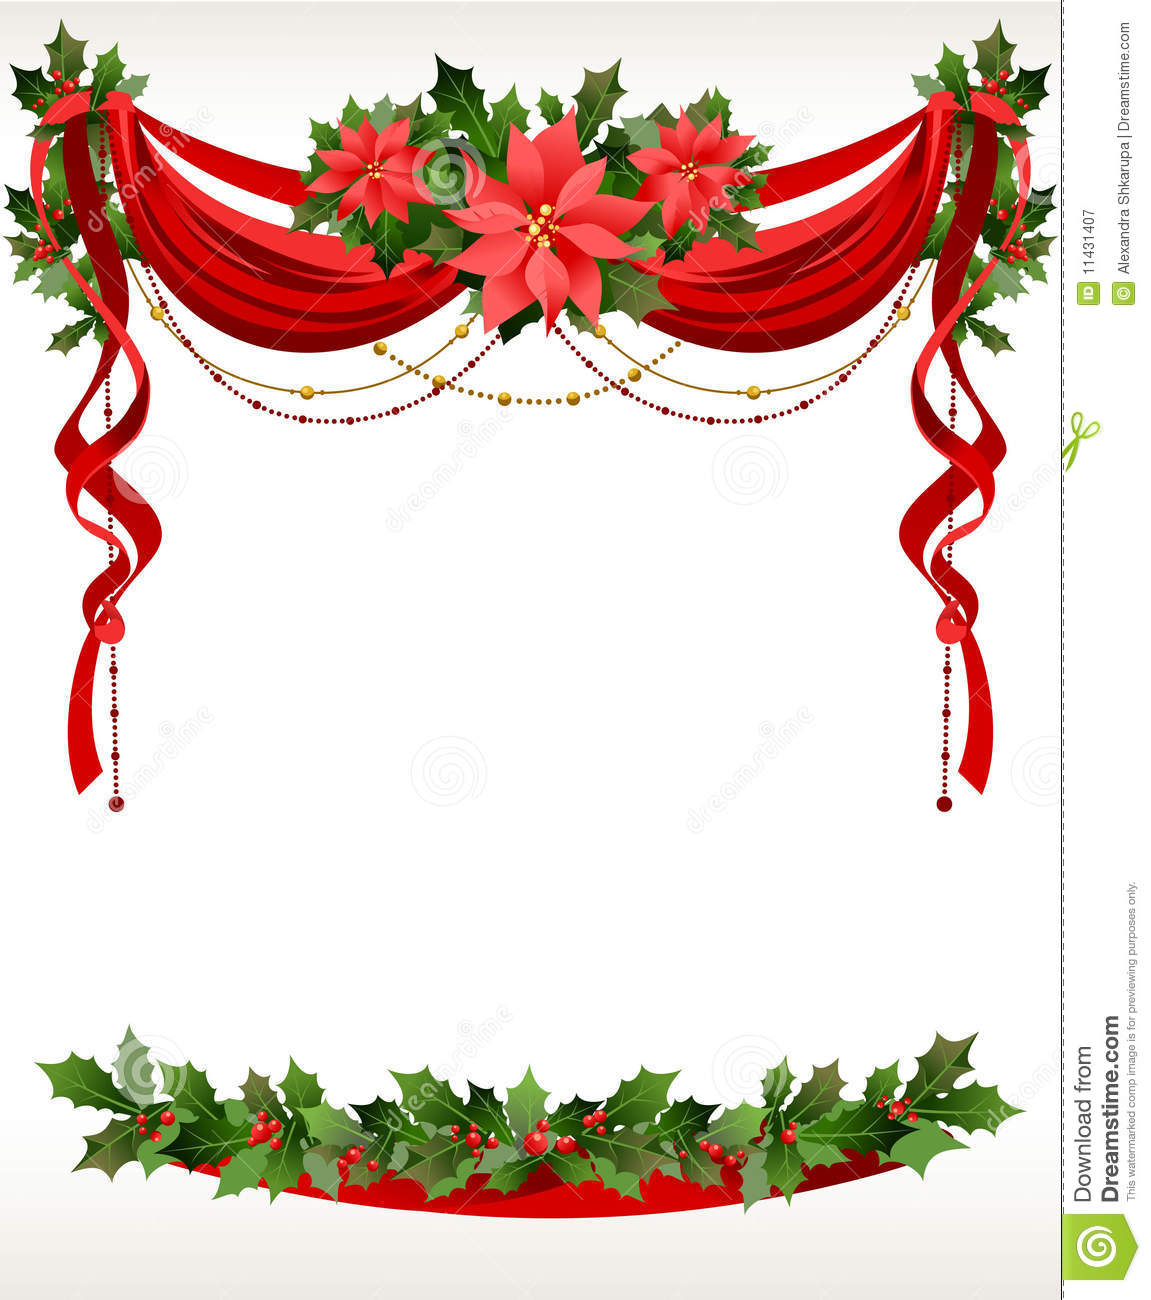 Christmas Picture Frame Clip Art | Clipart Panda - Free Clipart Images